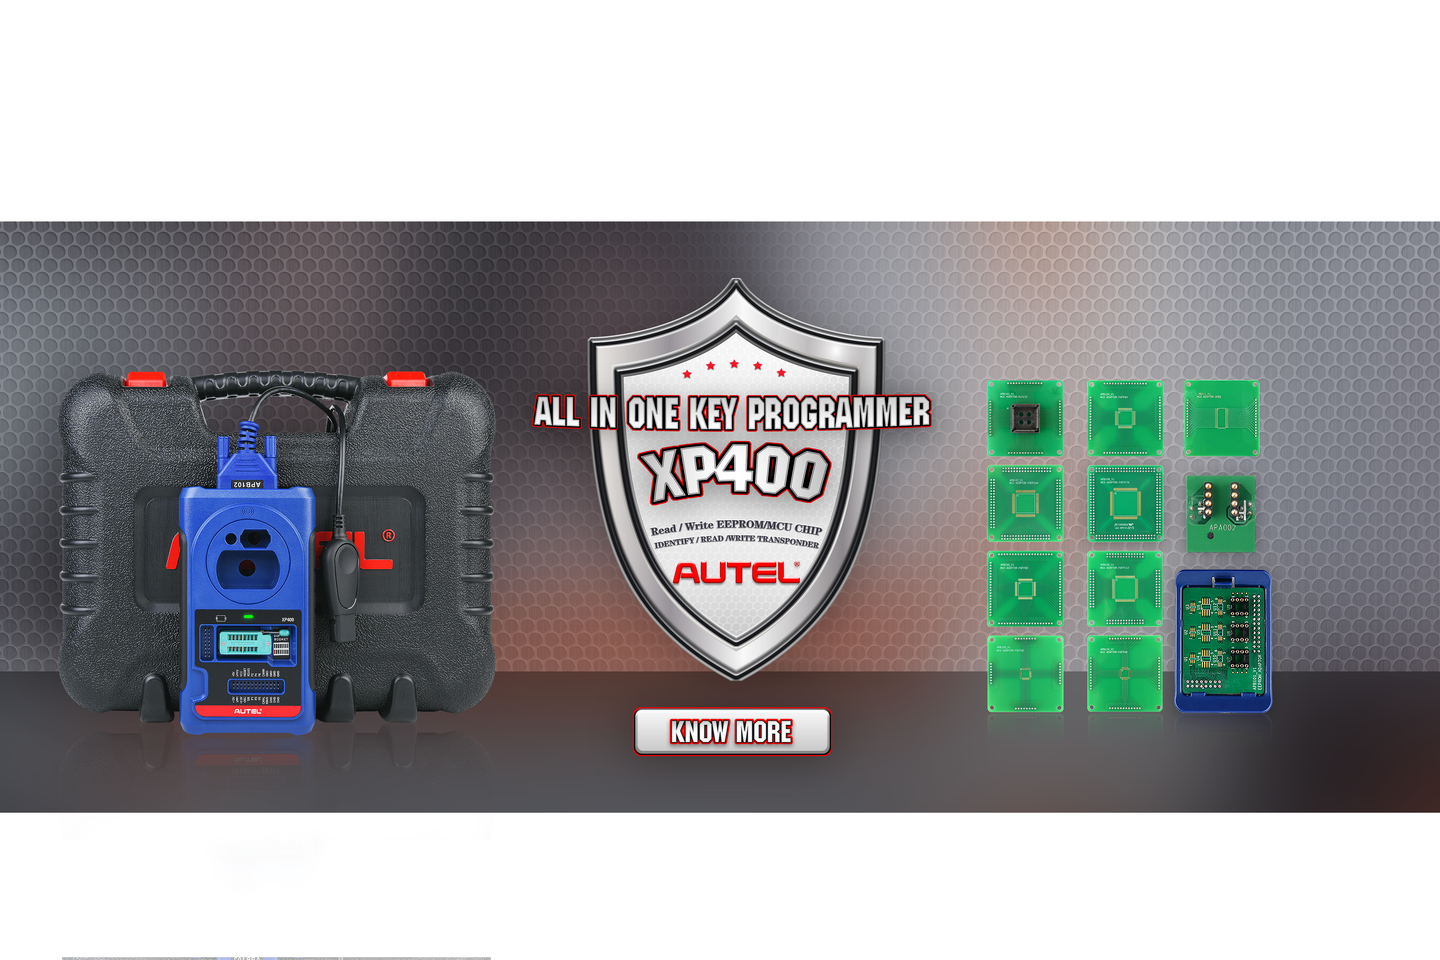 Autel XP400 key chip programmer